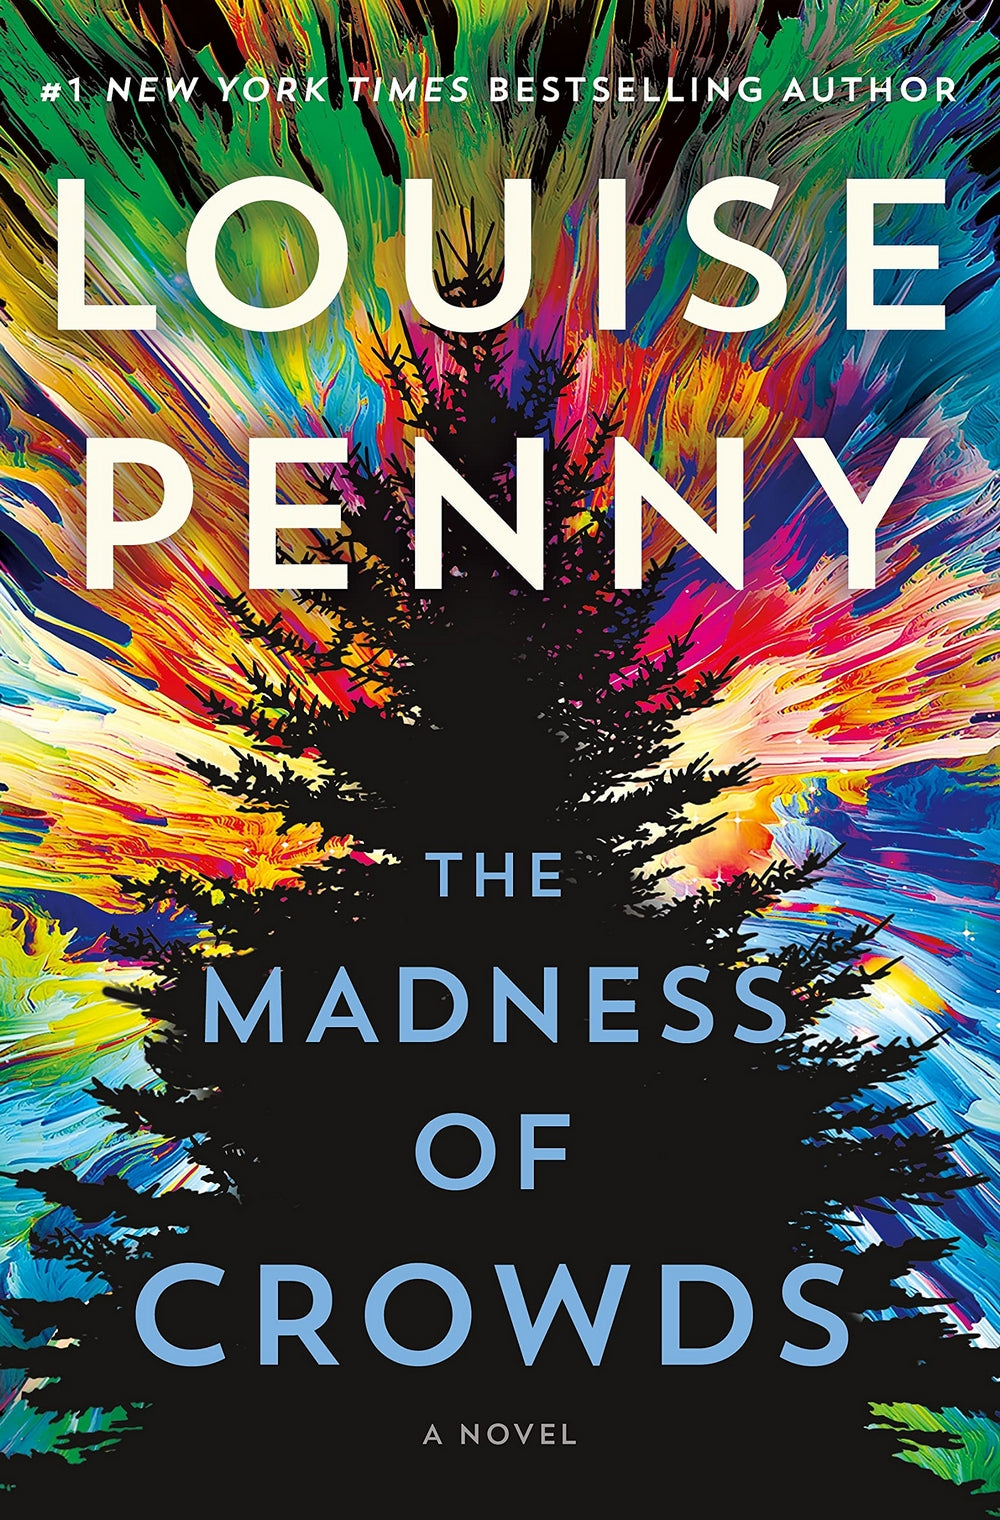 The Madness of Crowds: A Novel (Chief Inspector Gamache Novel, 17) - Louise Penny | Edmonds Book Store